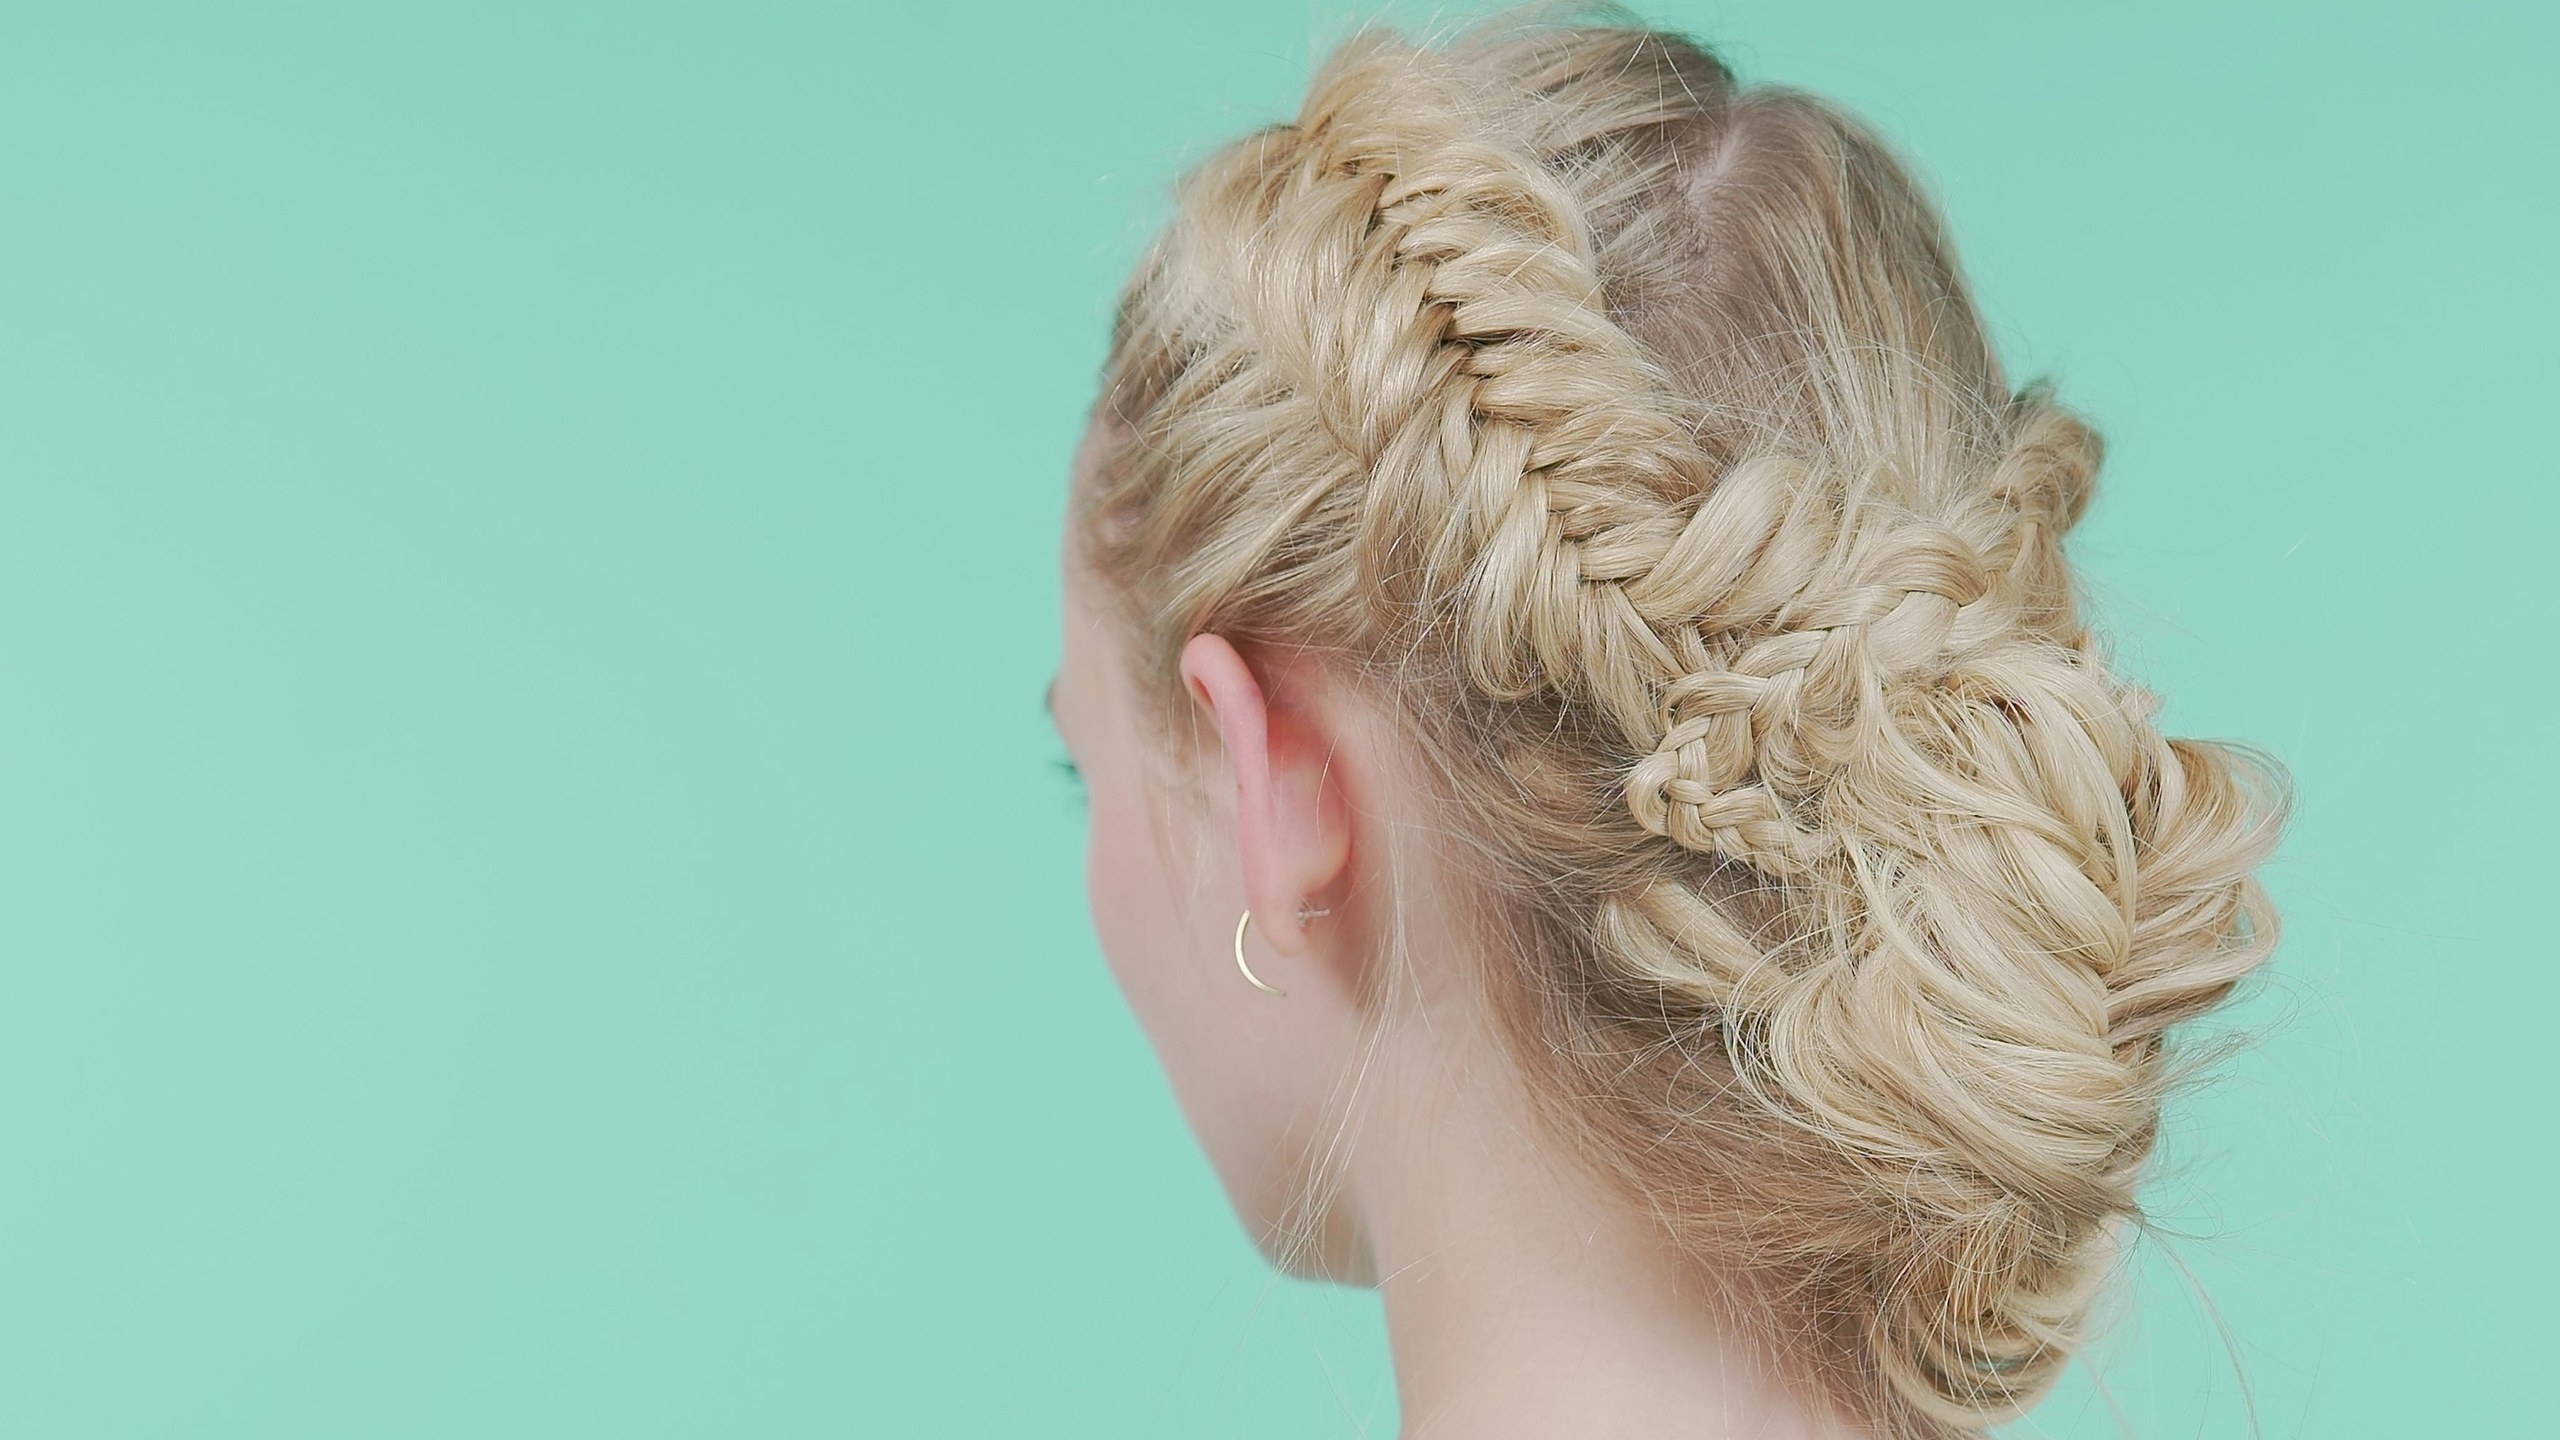 Teen Intended For Widely Used Criss Cross Braid Bun Hairstyles (View 19 of 20)